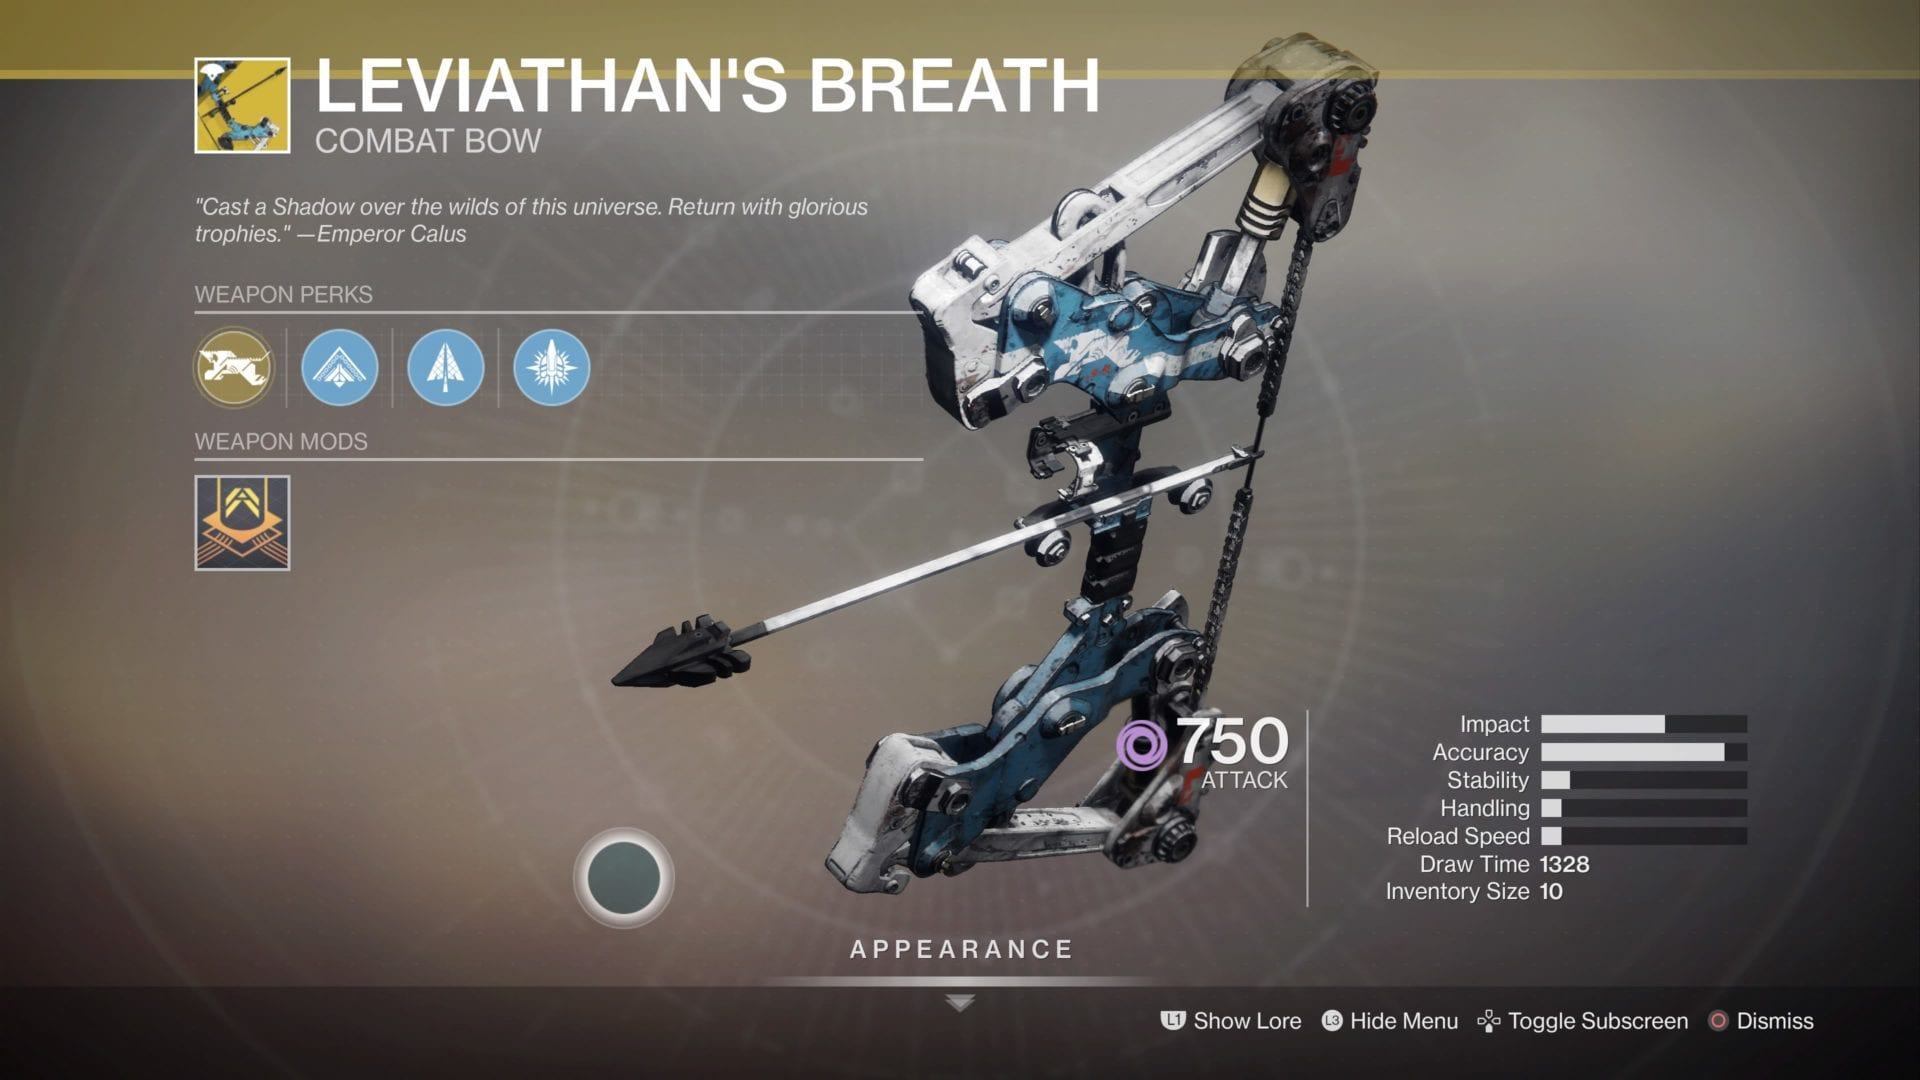 destiny 2, leviathan's breath, how to get